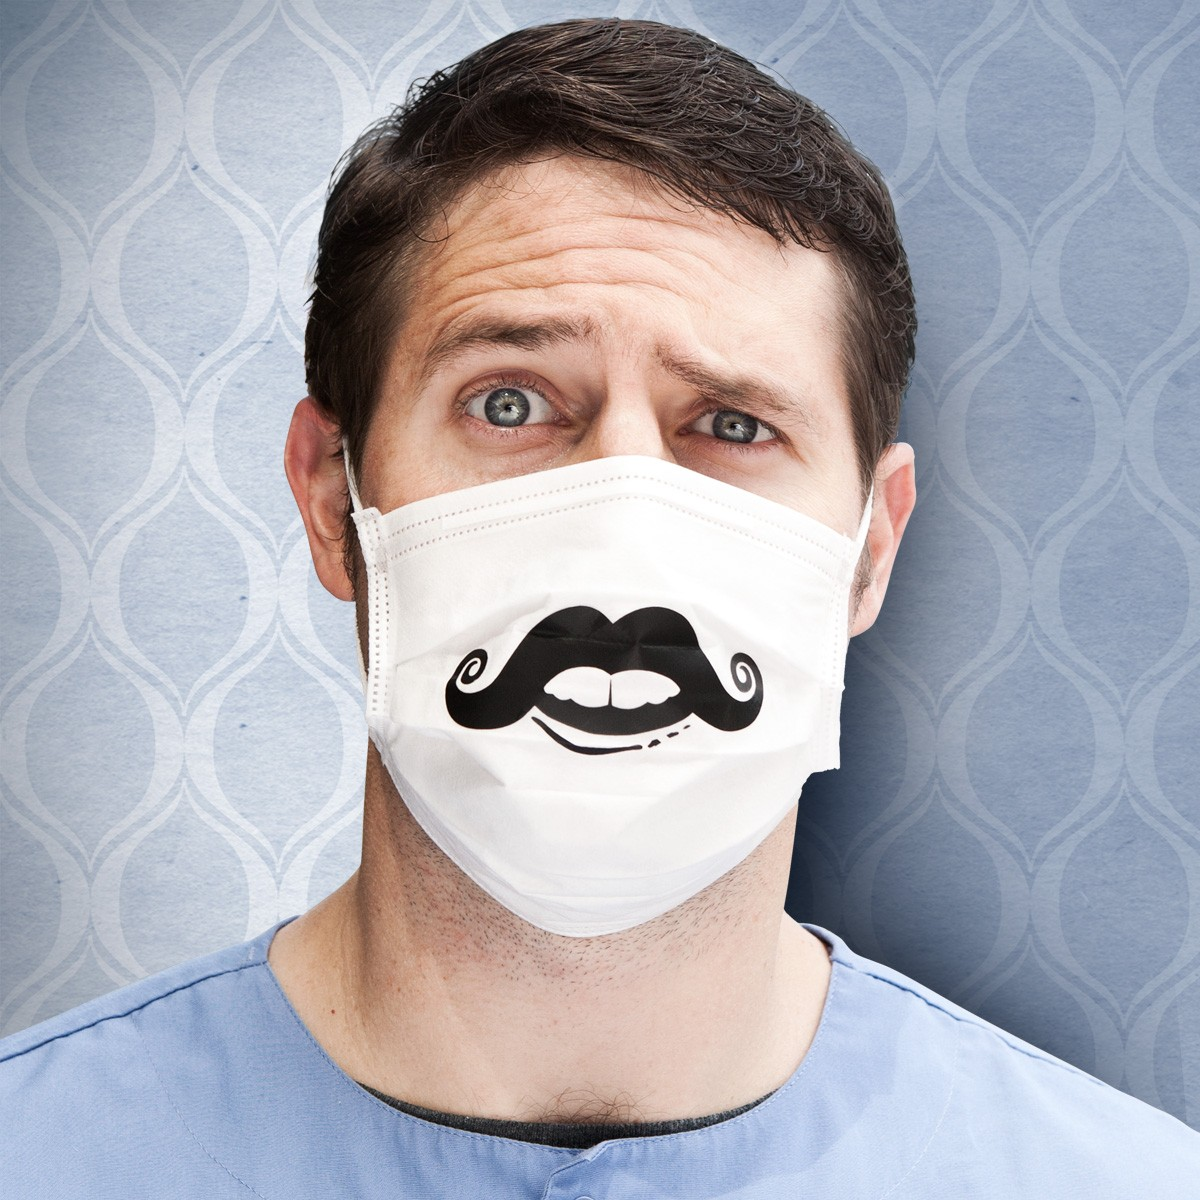 funny-surgical-mask-mustache